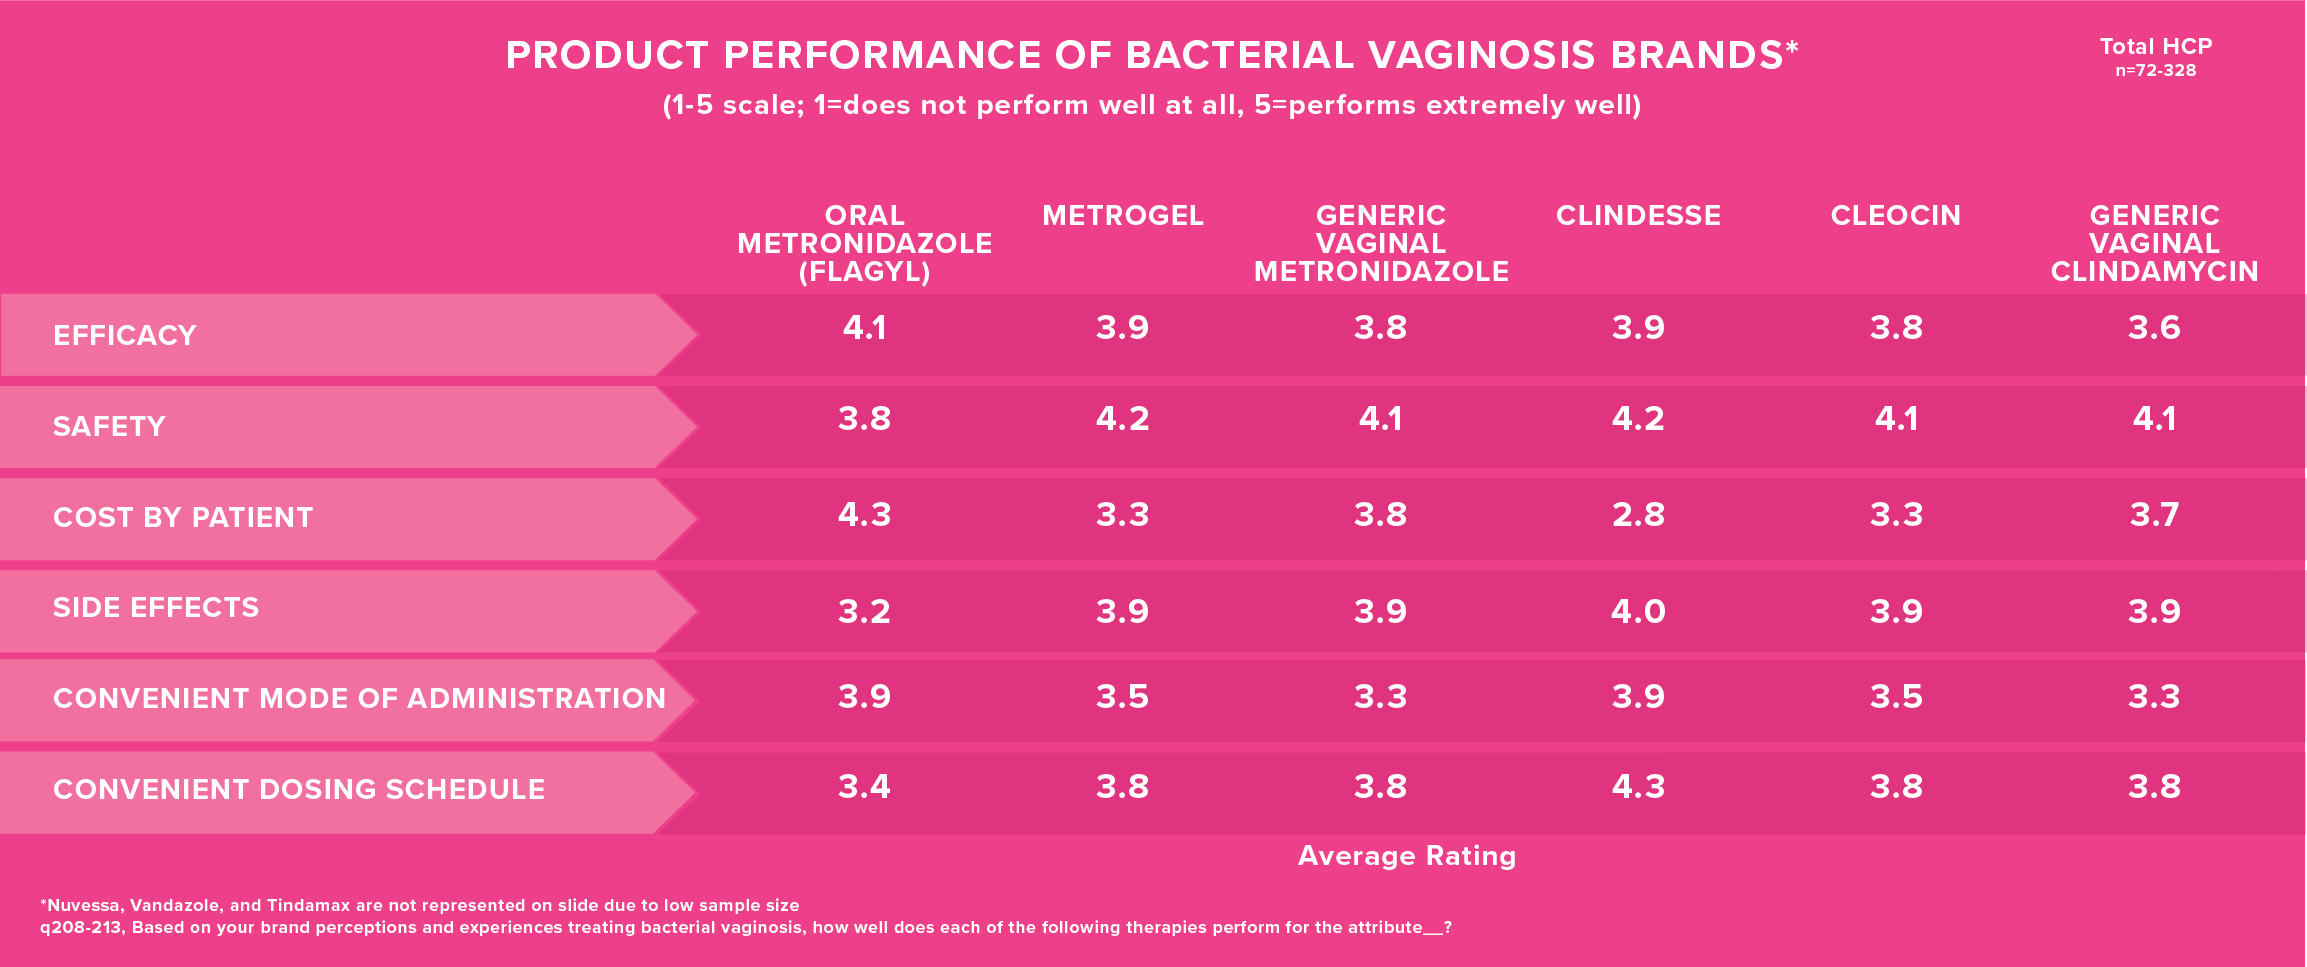 product performance chart for bacterial vaginosis treatment brands